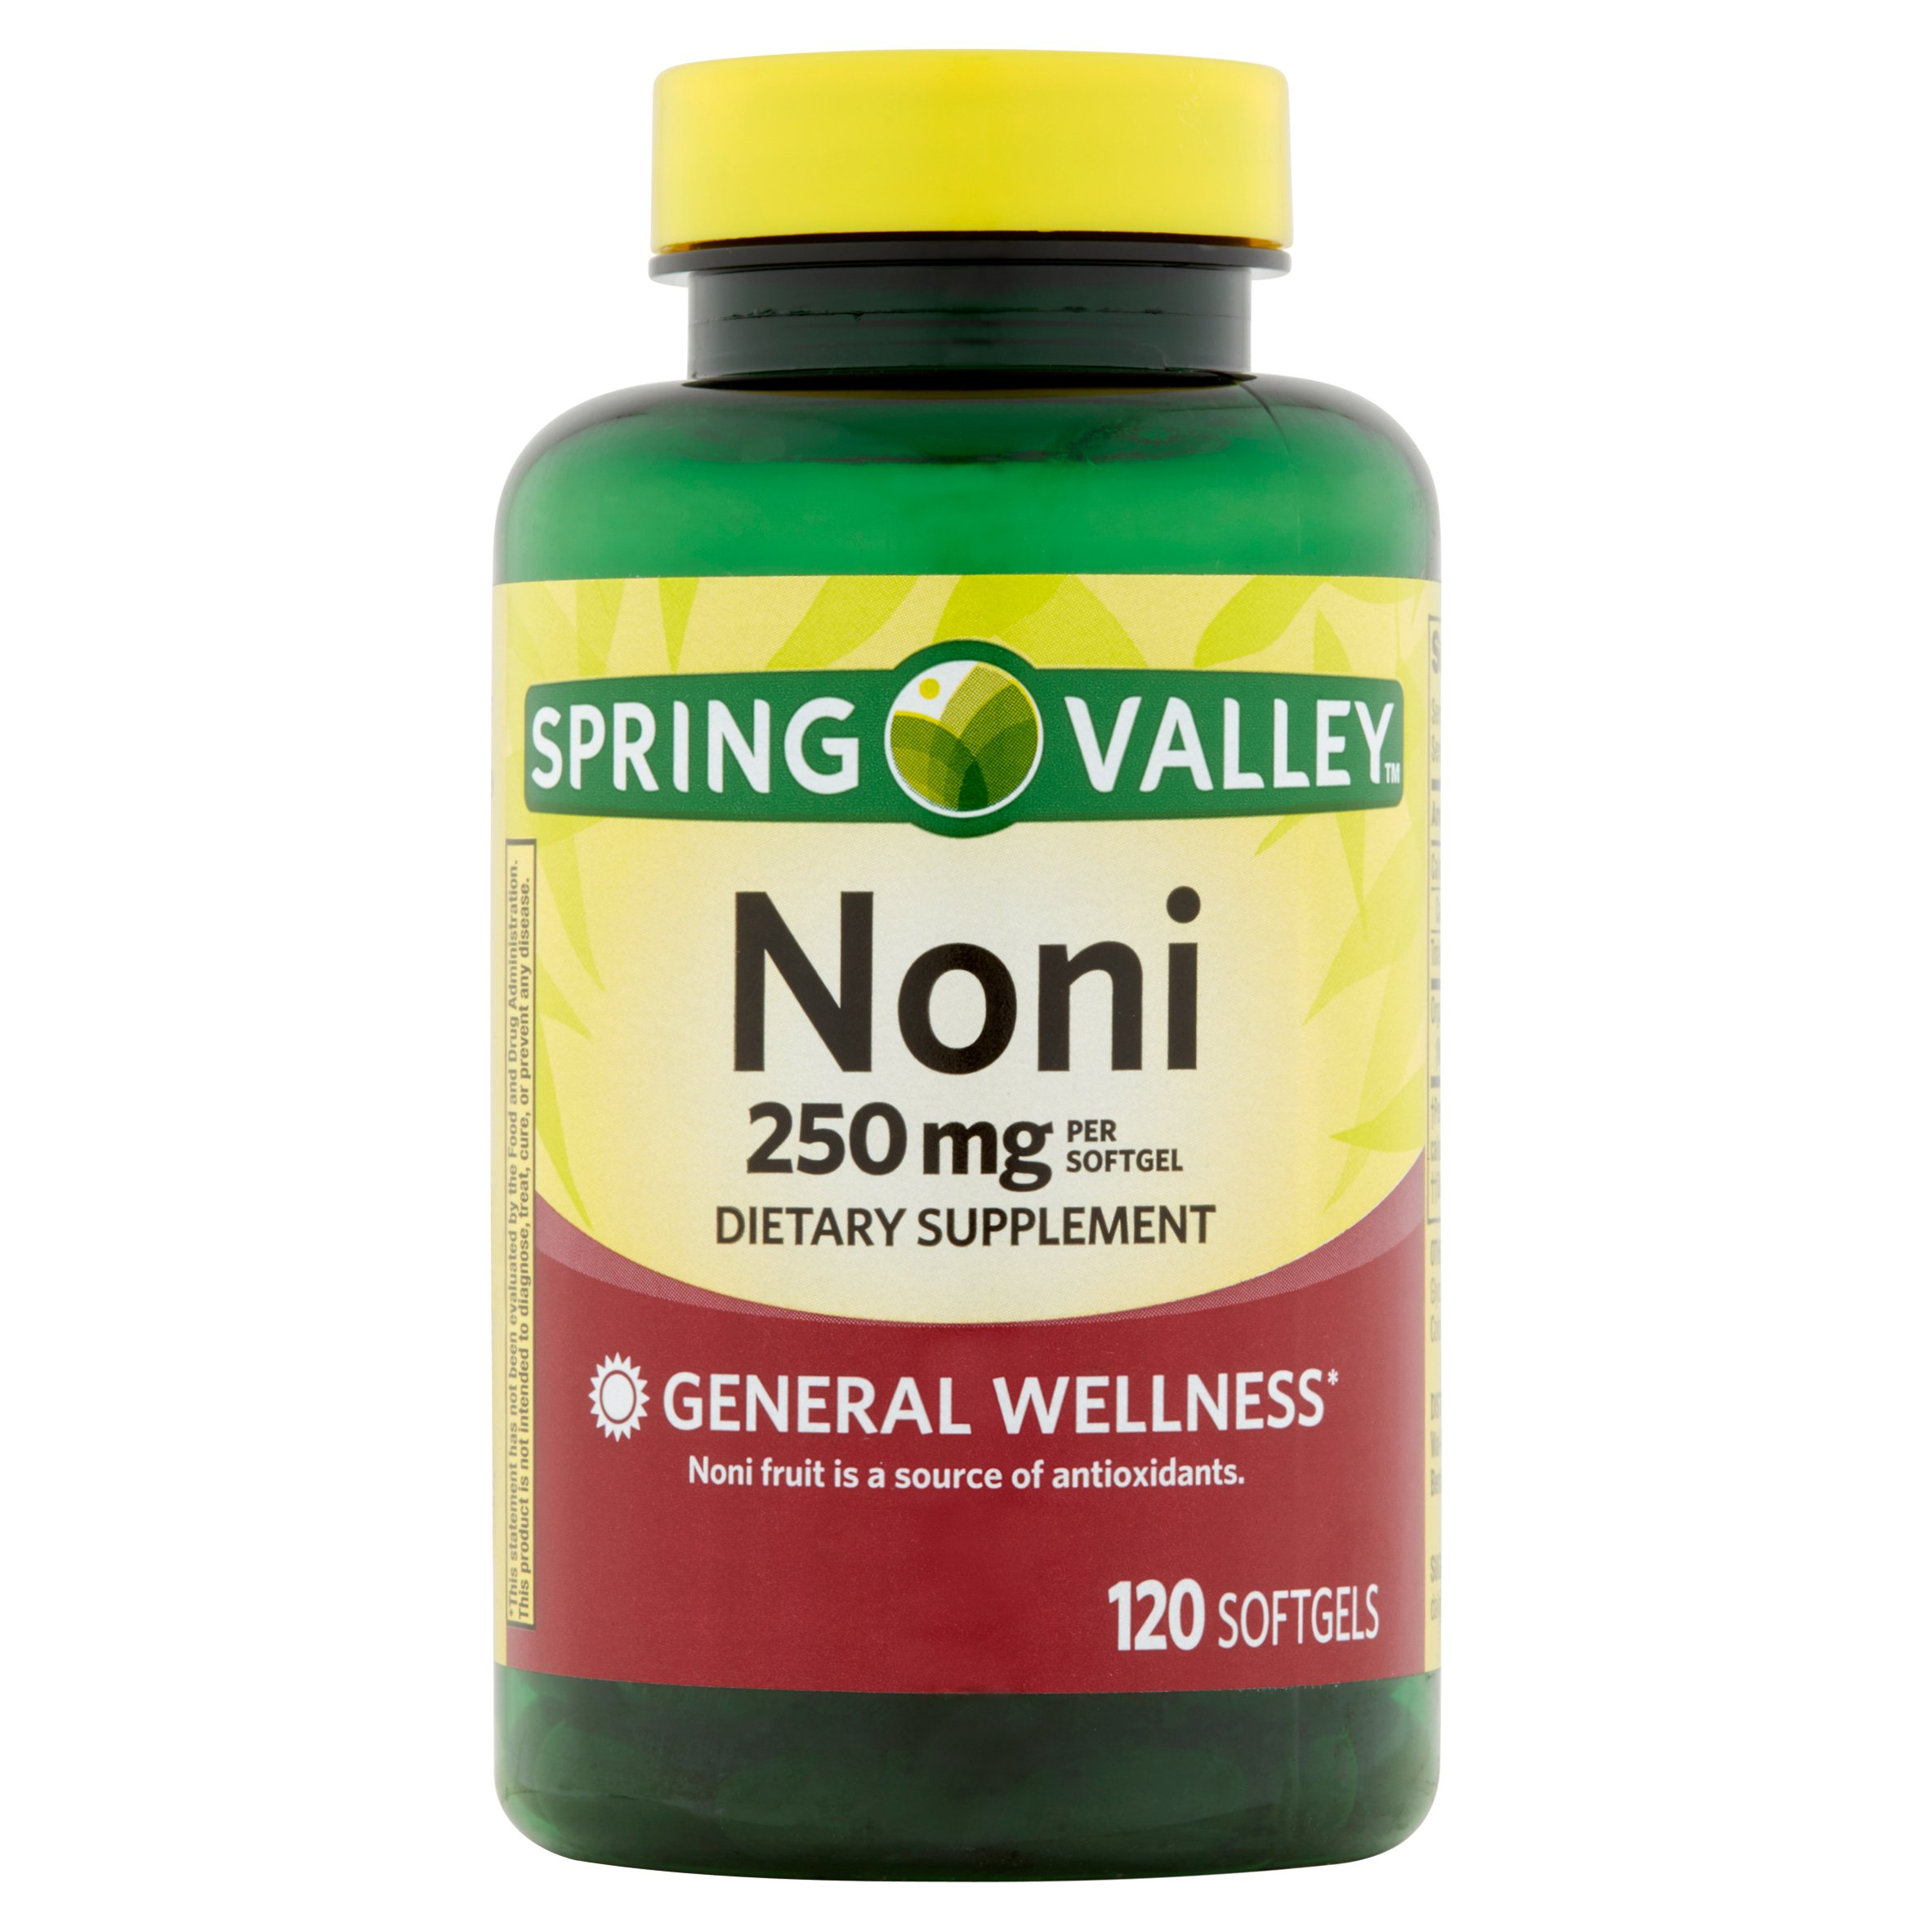 Spring Valley Noni Softgels, 250 mg, 120 Ct